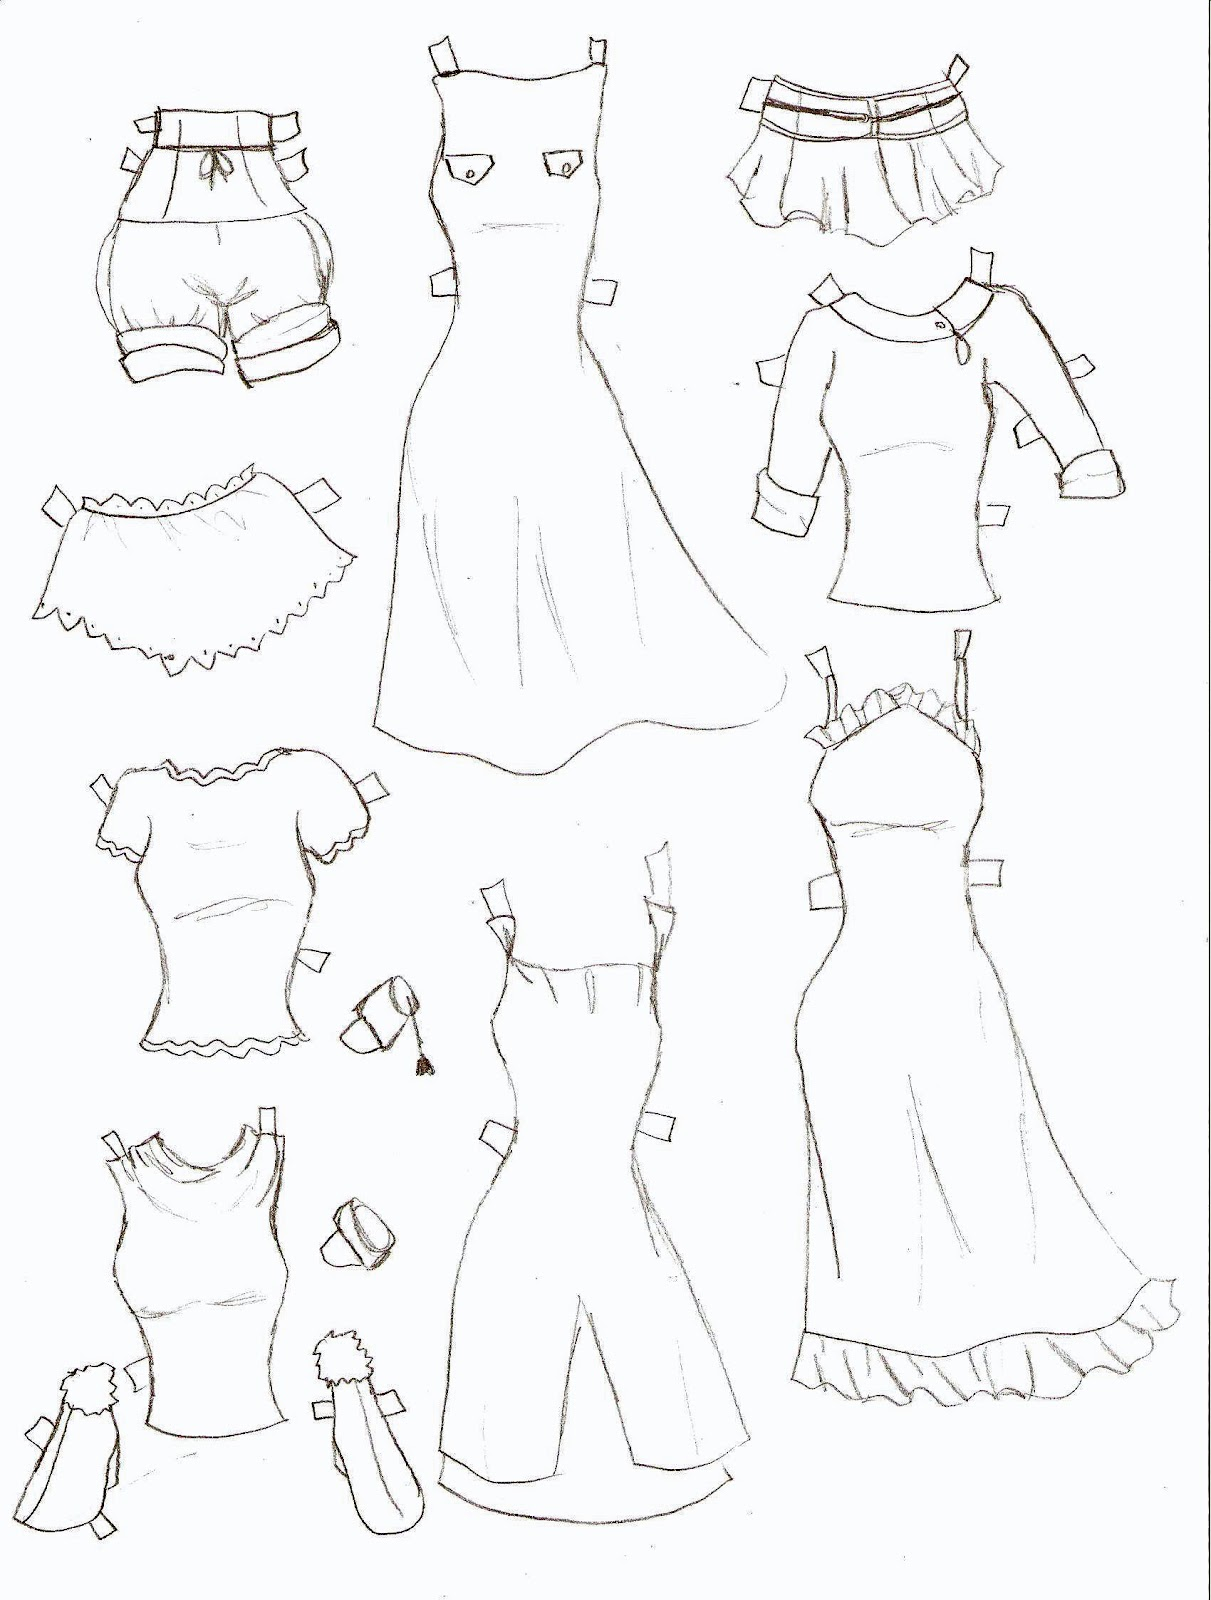 215680269627324668 further Paper Doll Dresses And Skirts also Open as well Alexander Mcqueen Broderie Anglaise Puff Sleeve Blouse White further How To Wear White In Summer Exhibit. on pleated shirt